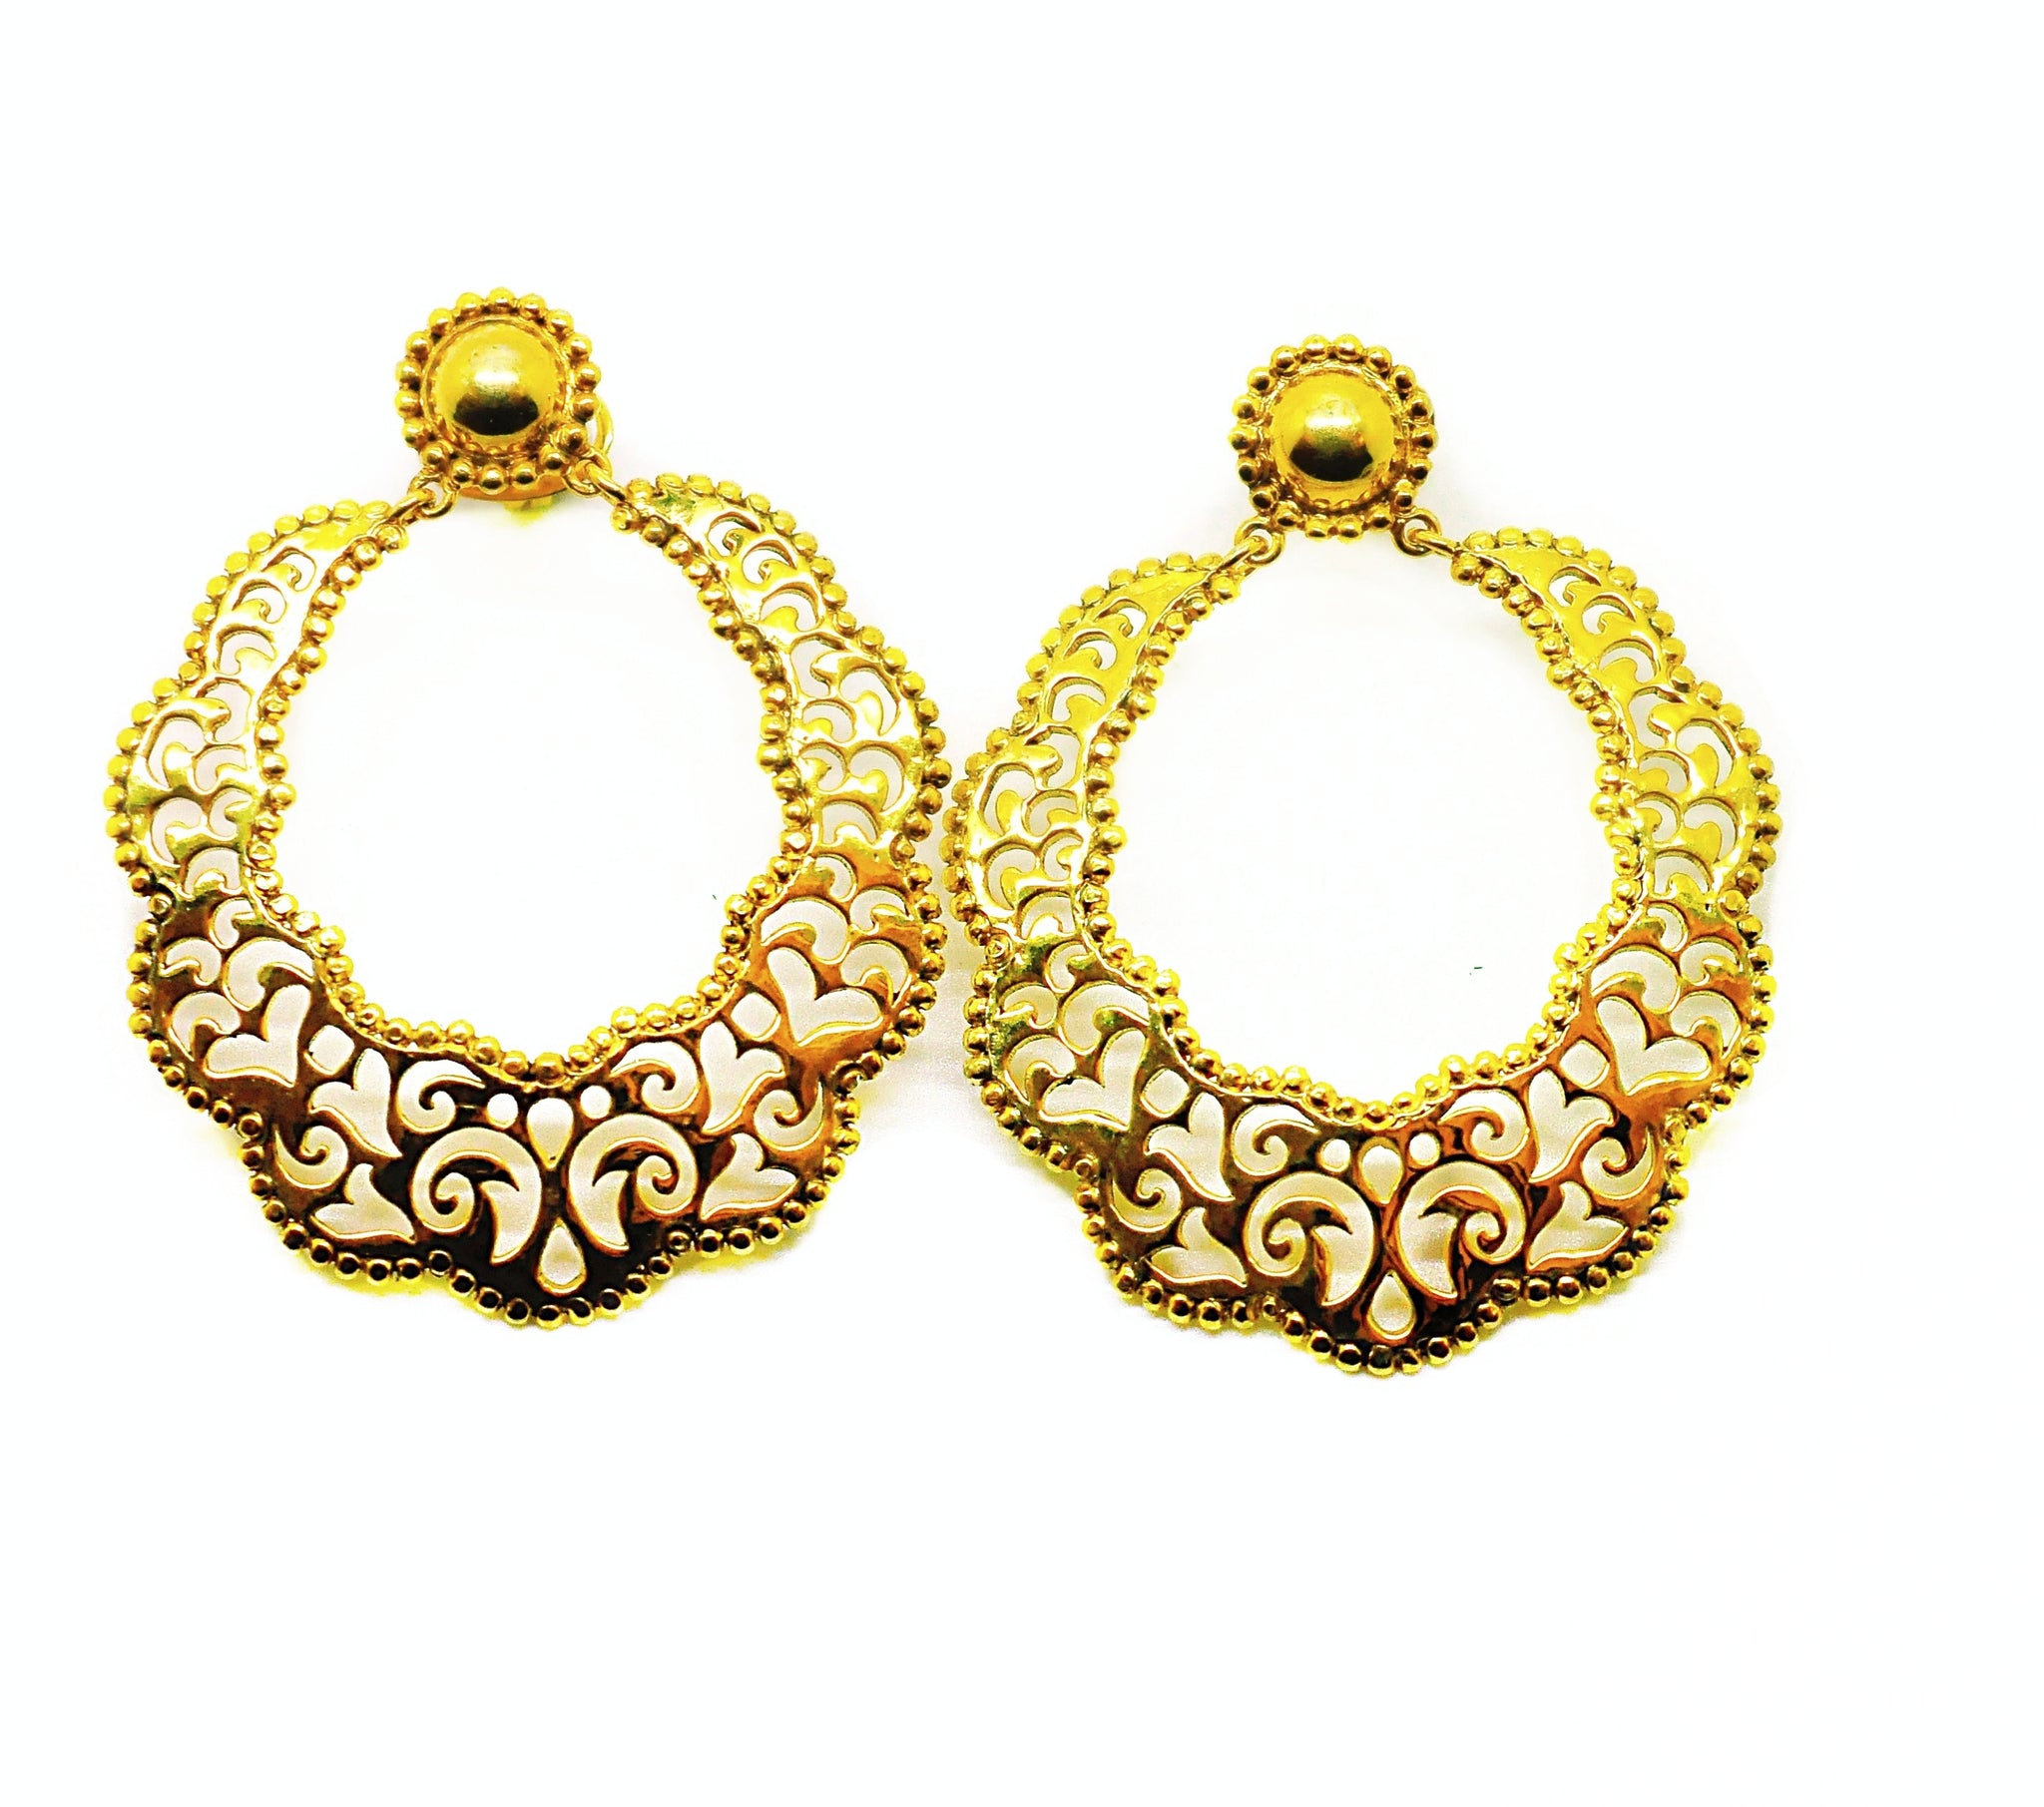 SOLD - NEW Indian filigree 4 - gold